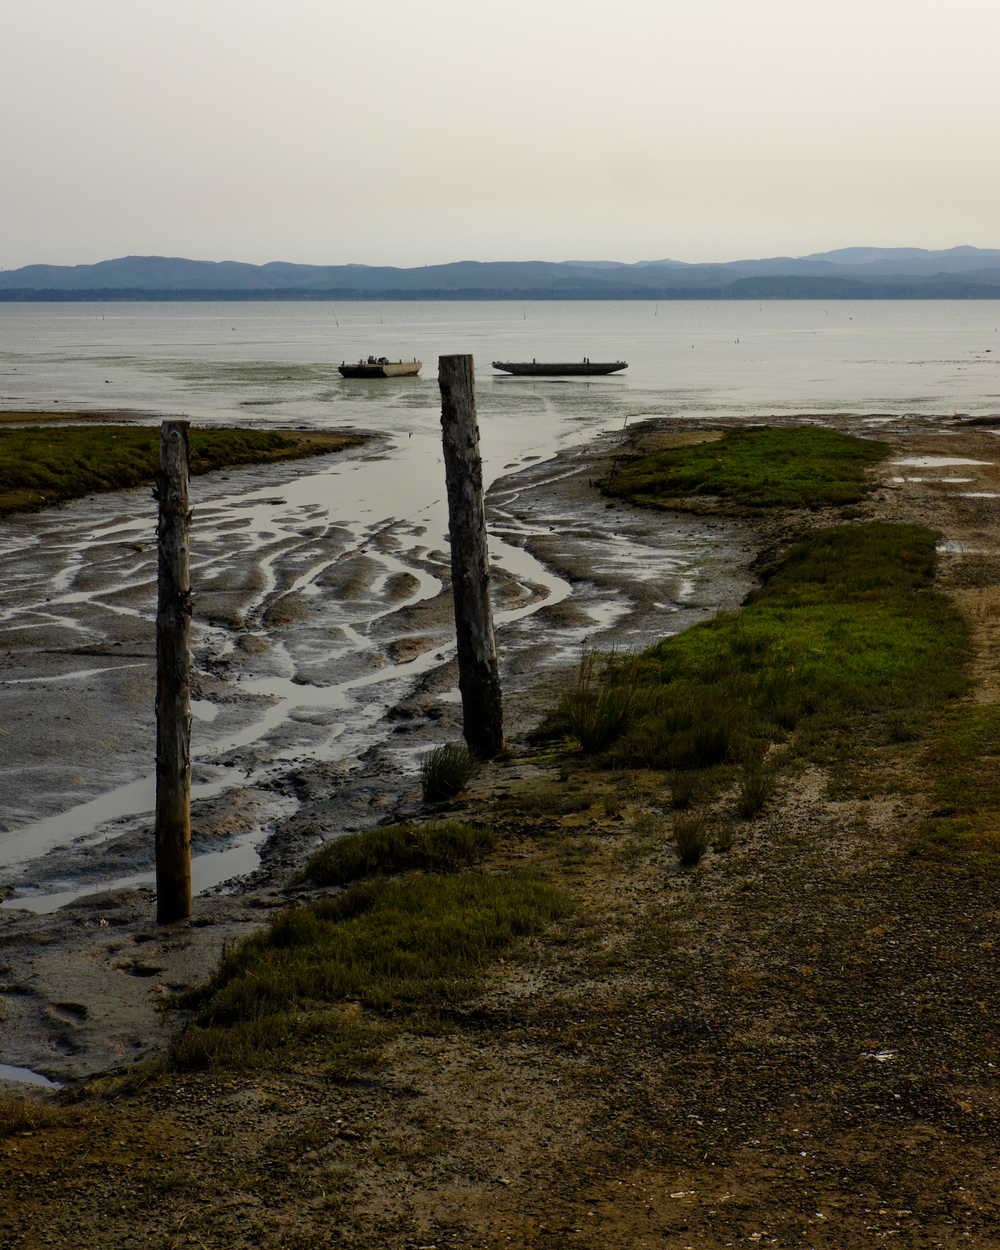 Tide flats, Willapa Bay